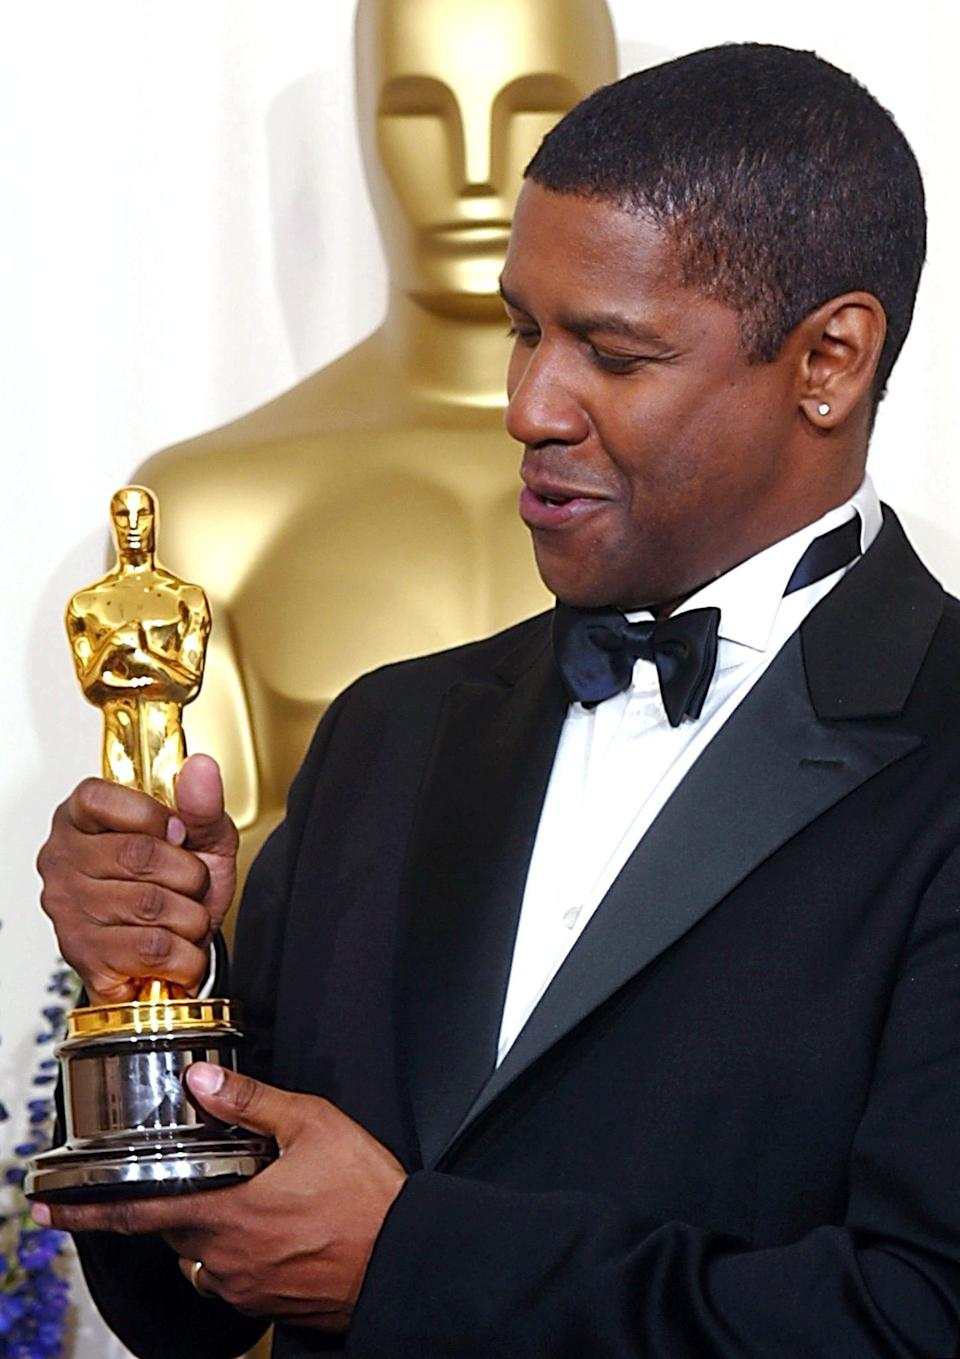 <ul> <li><strong>Has:</strong> Two Oscars for <strong>Glory</strong> and <strong>Training Day</strong> and a Tony for <strong>Fences</strong></li> <li><strong>Needs:</strong> A Grammy and an Emmy</li> </ul>